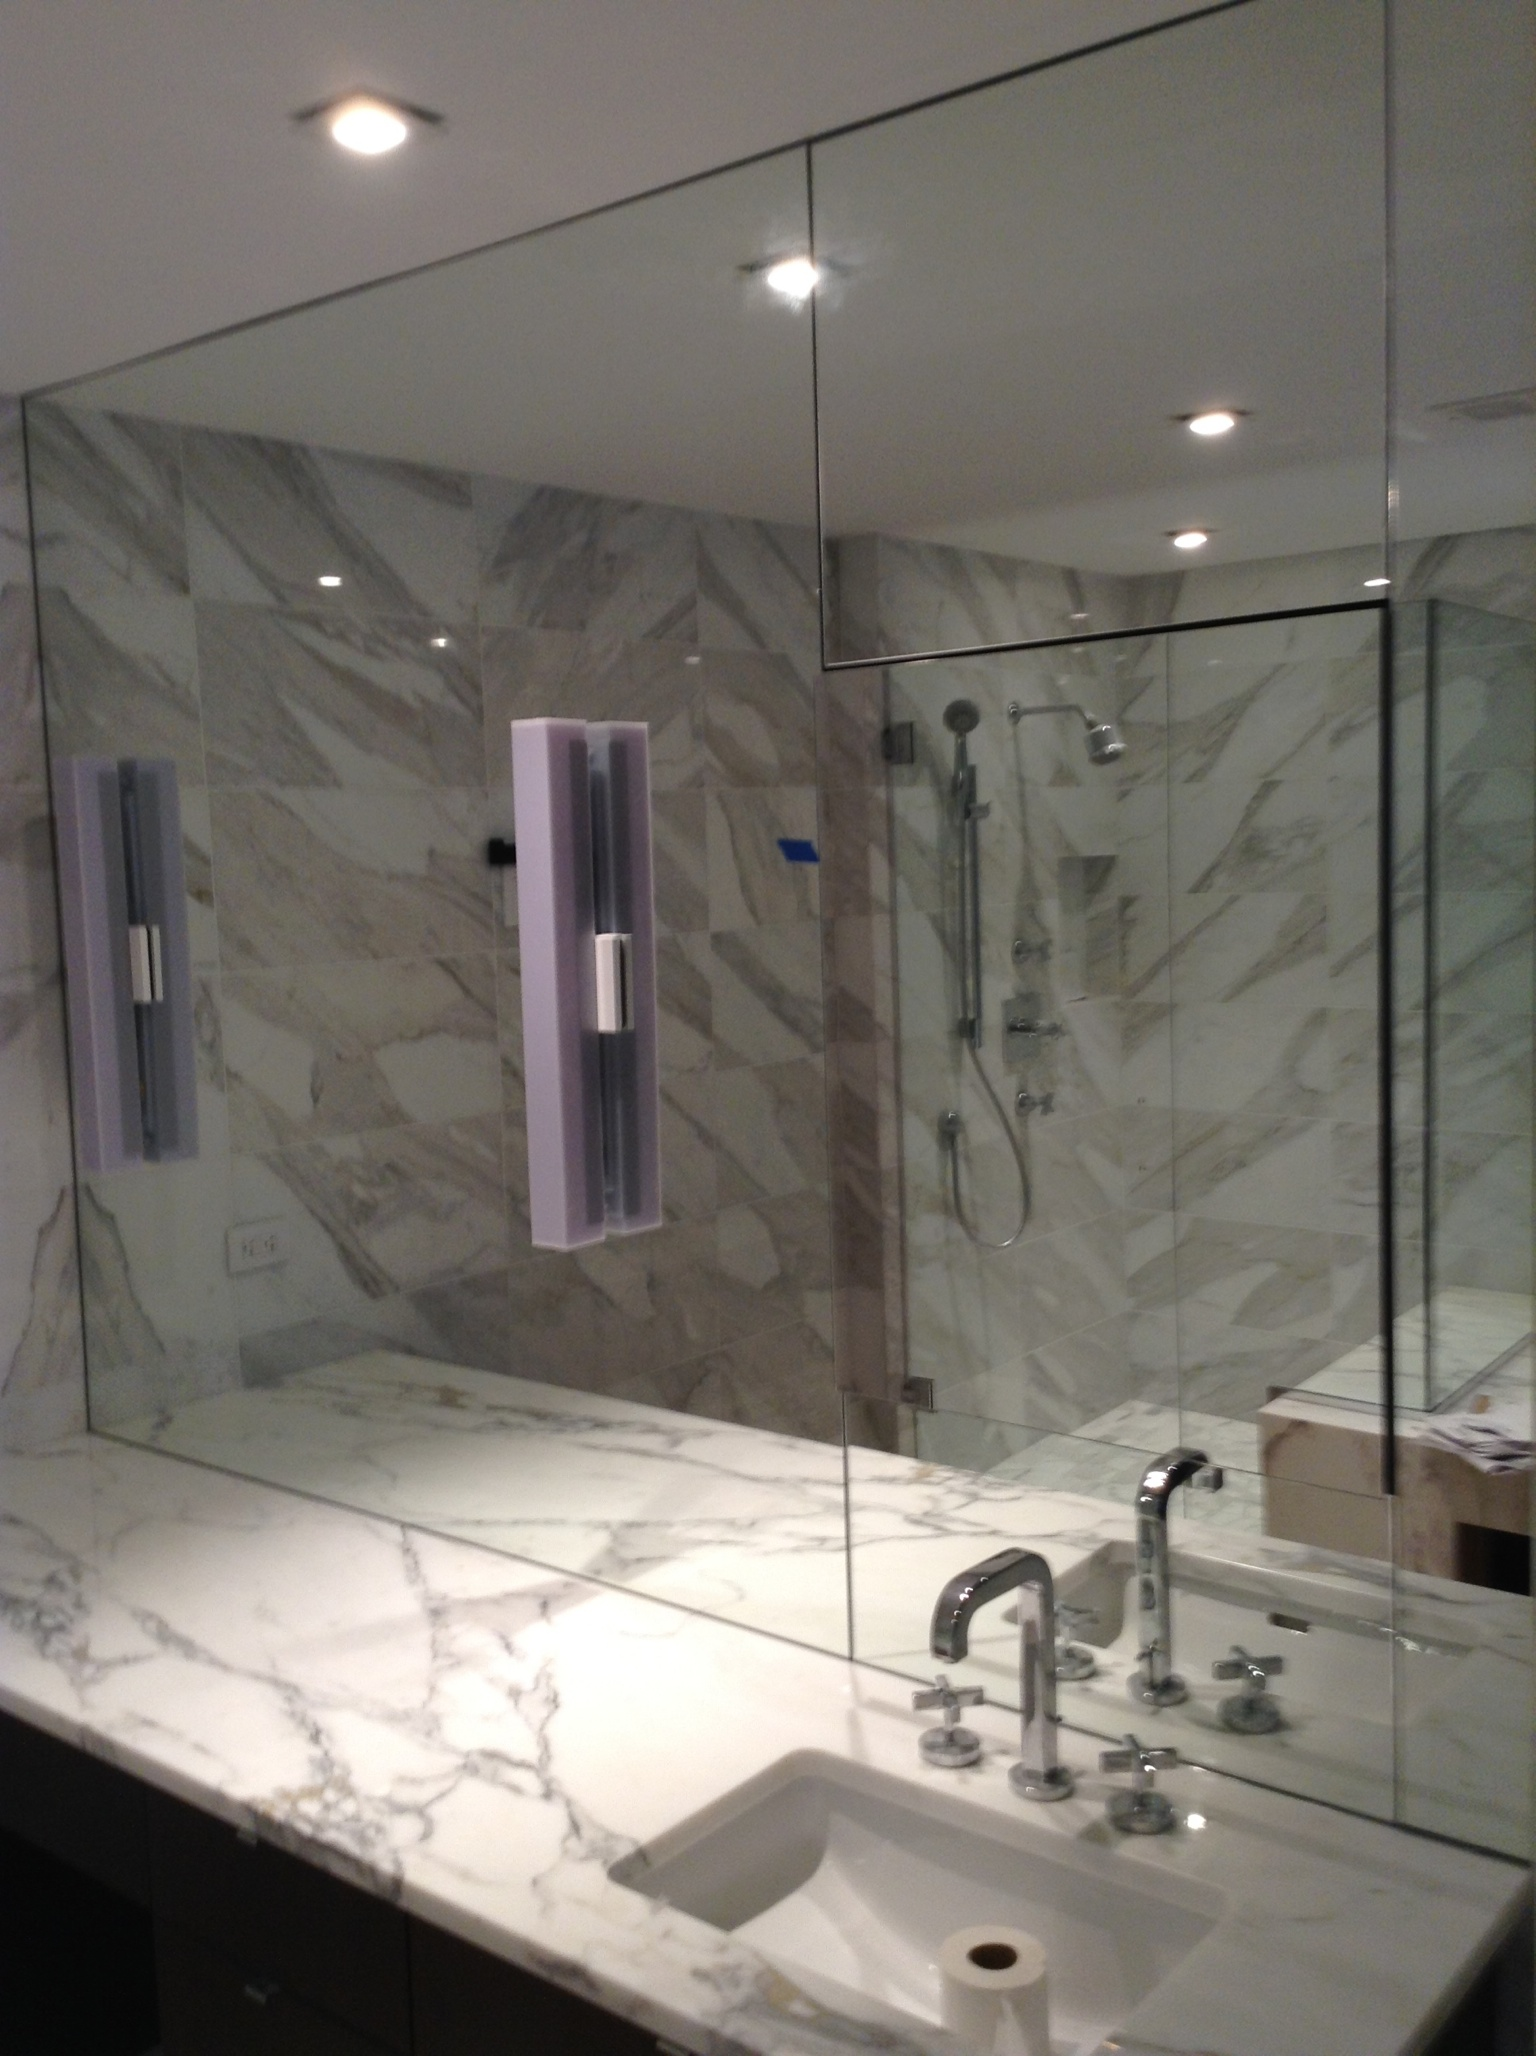 mirrors-and-glass-003.JPG